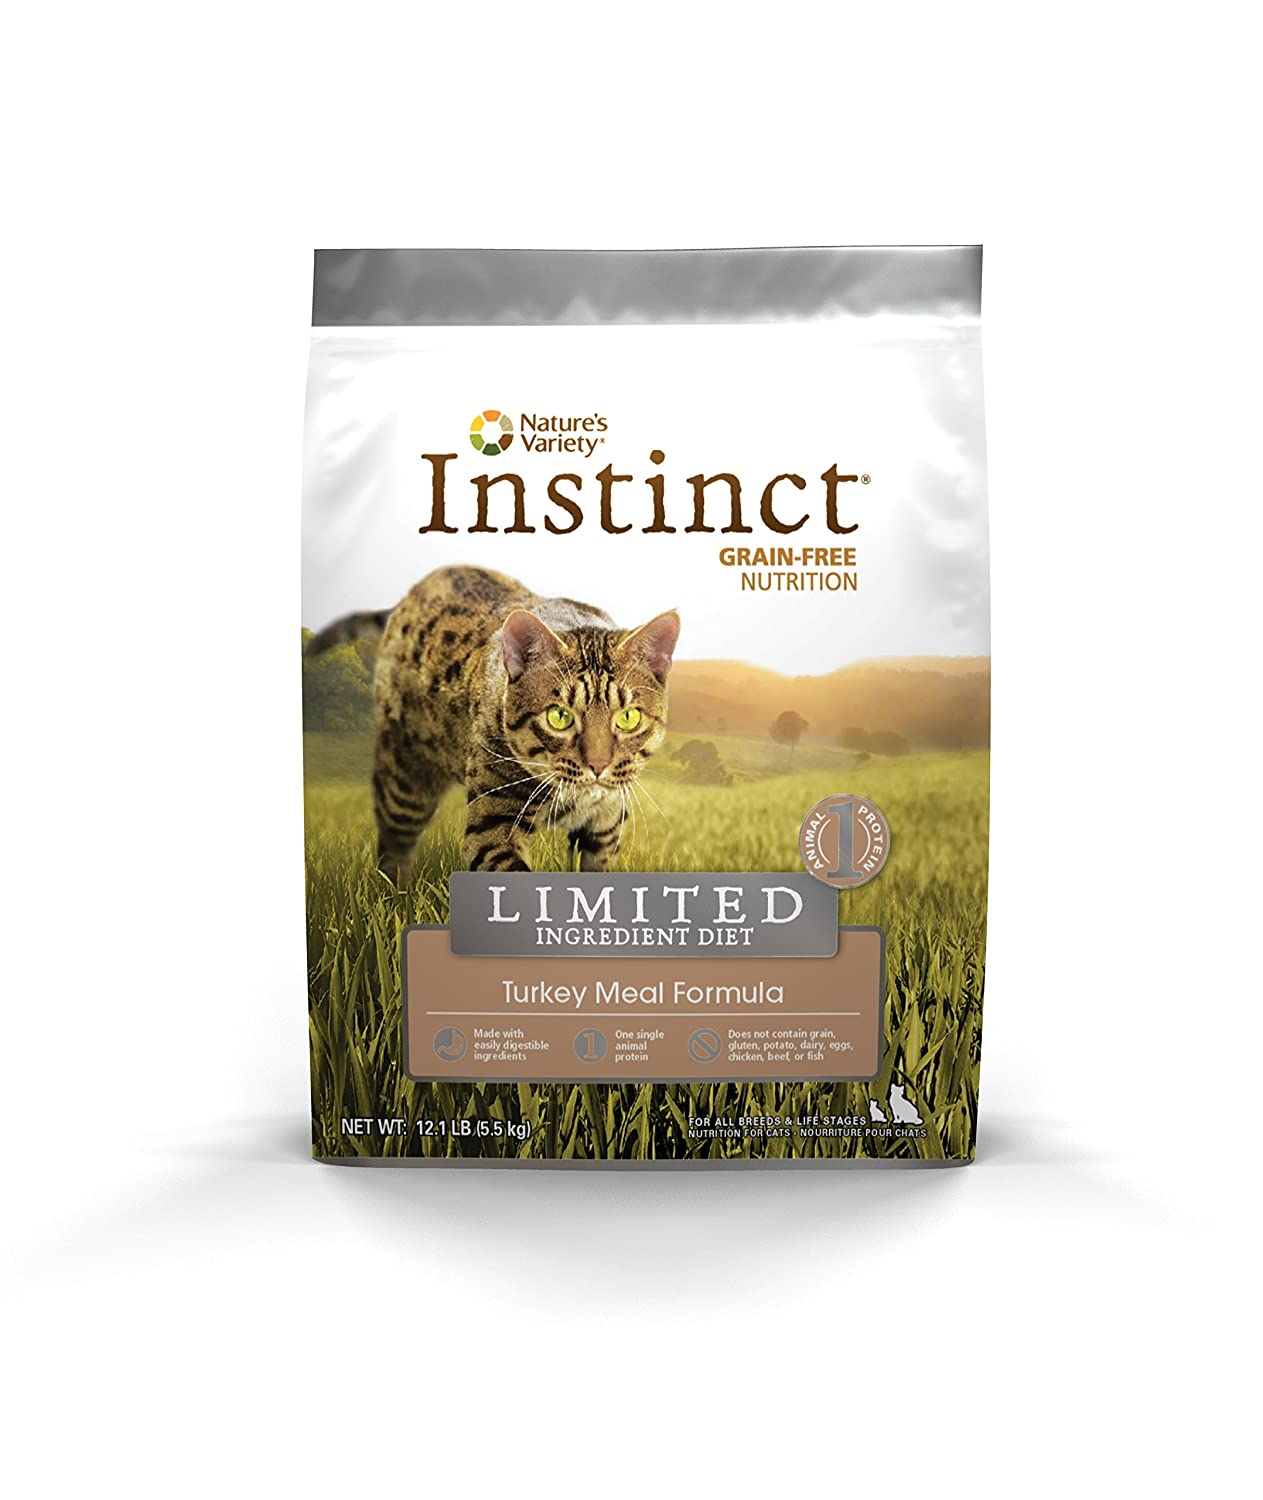 Nature's Variety Instinct Limited Ingredient Diet Grain-Free Dry Cat Food